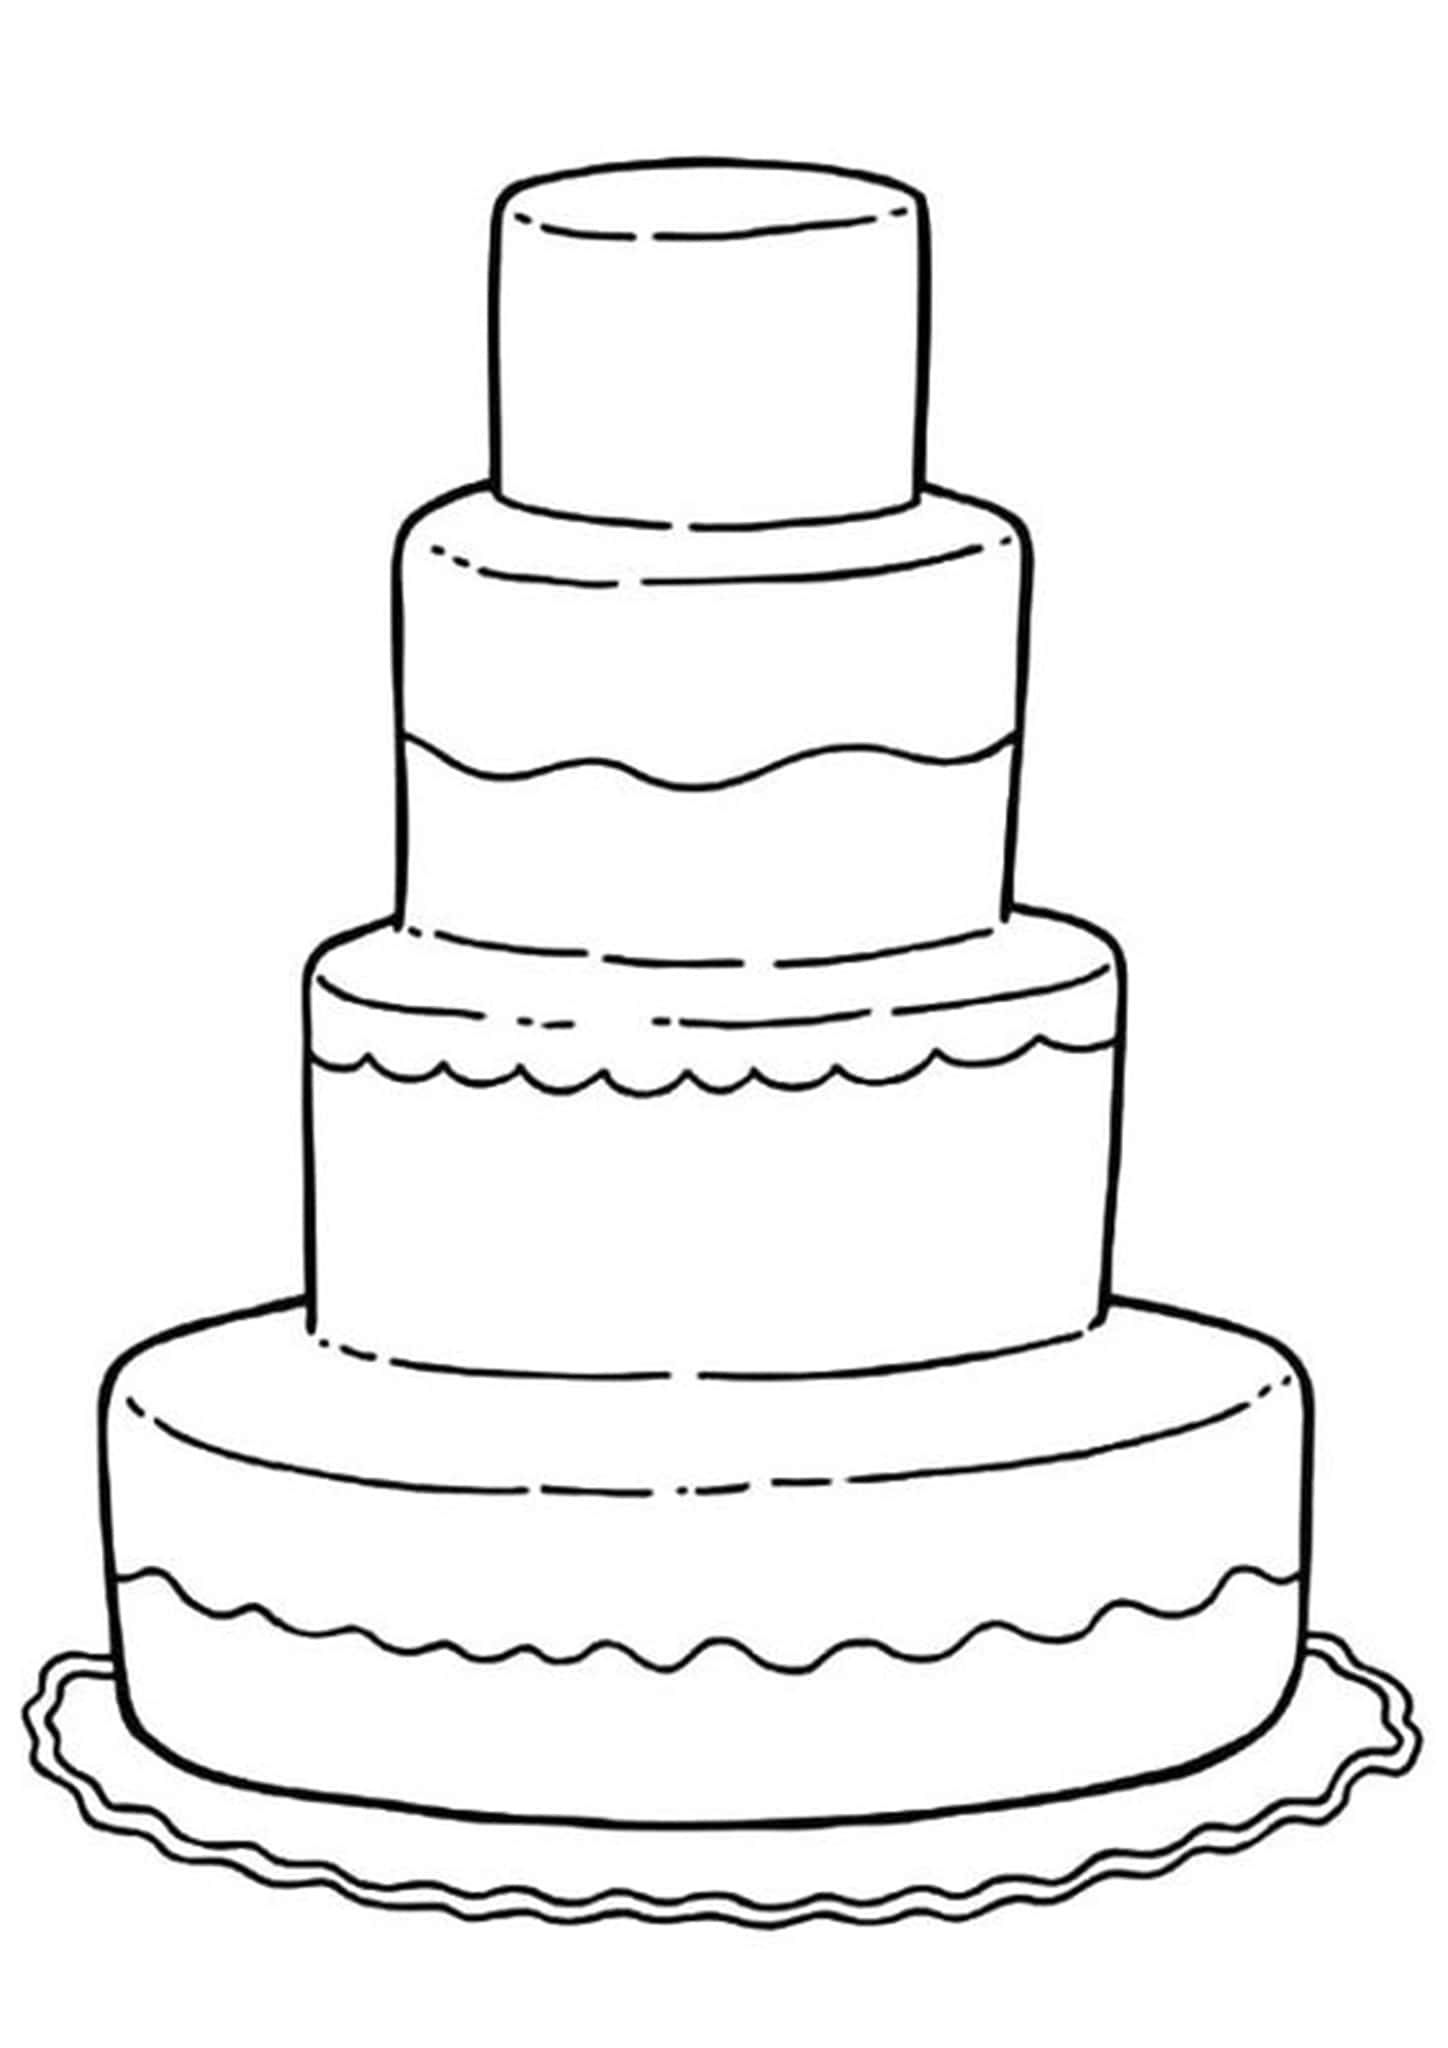 Free Easy To Print Cake Coloring Pages Wedding Coloring Pages Cupcake Coloring Pages Wedding With Kids